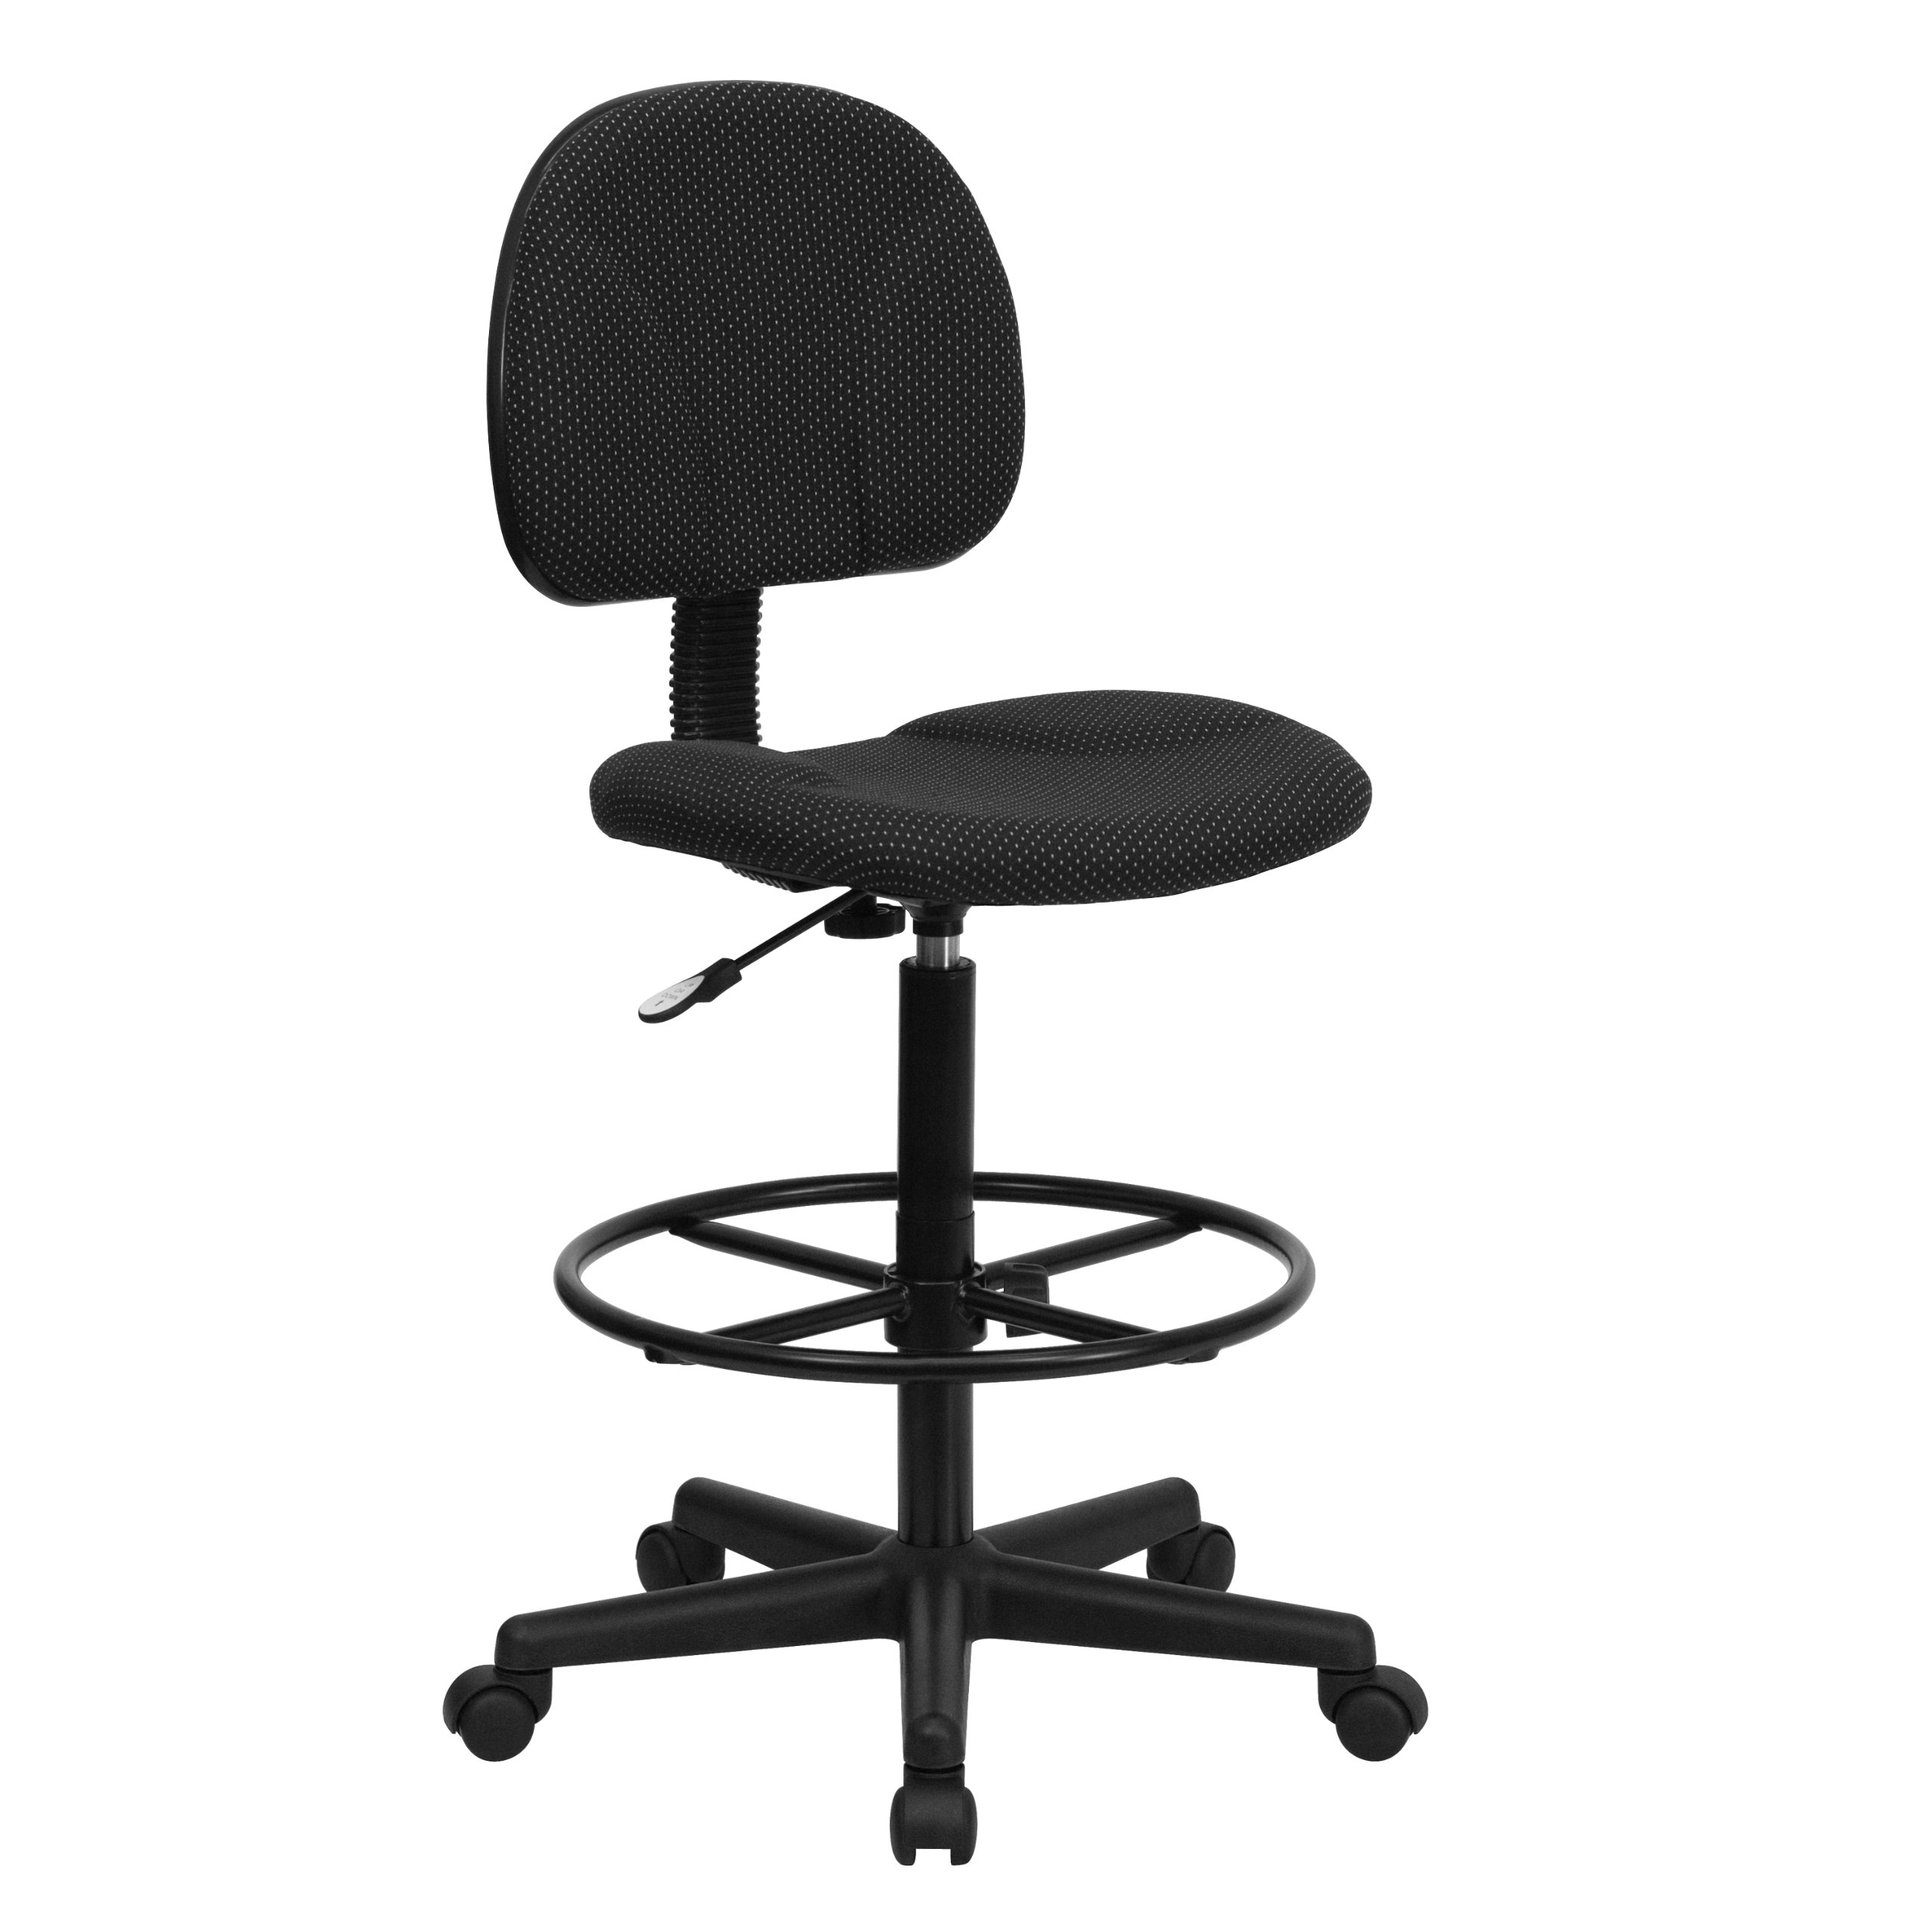 Flash Furniture Black Patterned Fabric Drafting Chair (Cylinders: 22.5''-27''H or 26''-30.5''H) by Flash Furniture